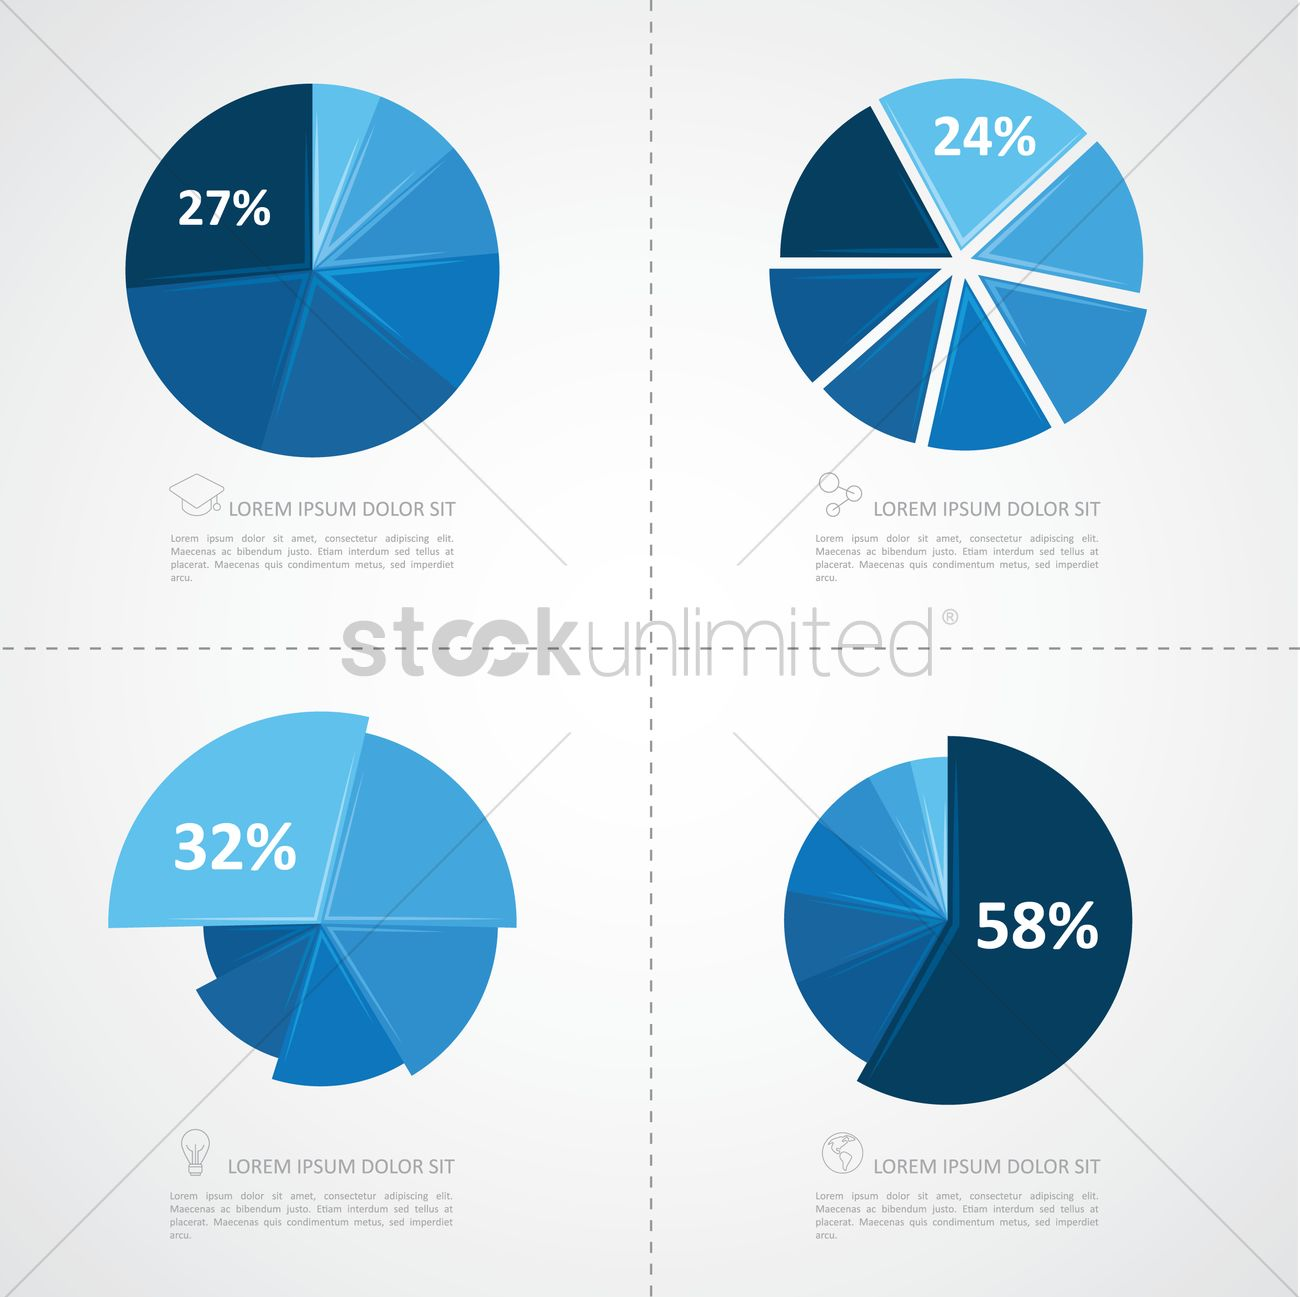 Business Pie Chart Infographic Vector Image 1264498 Stockunlimited